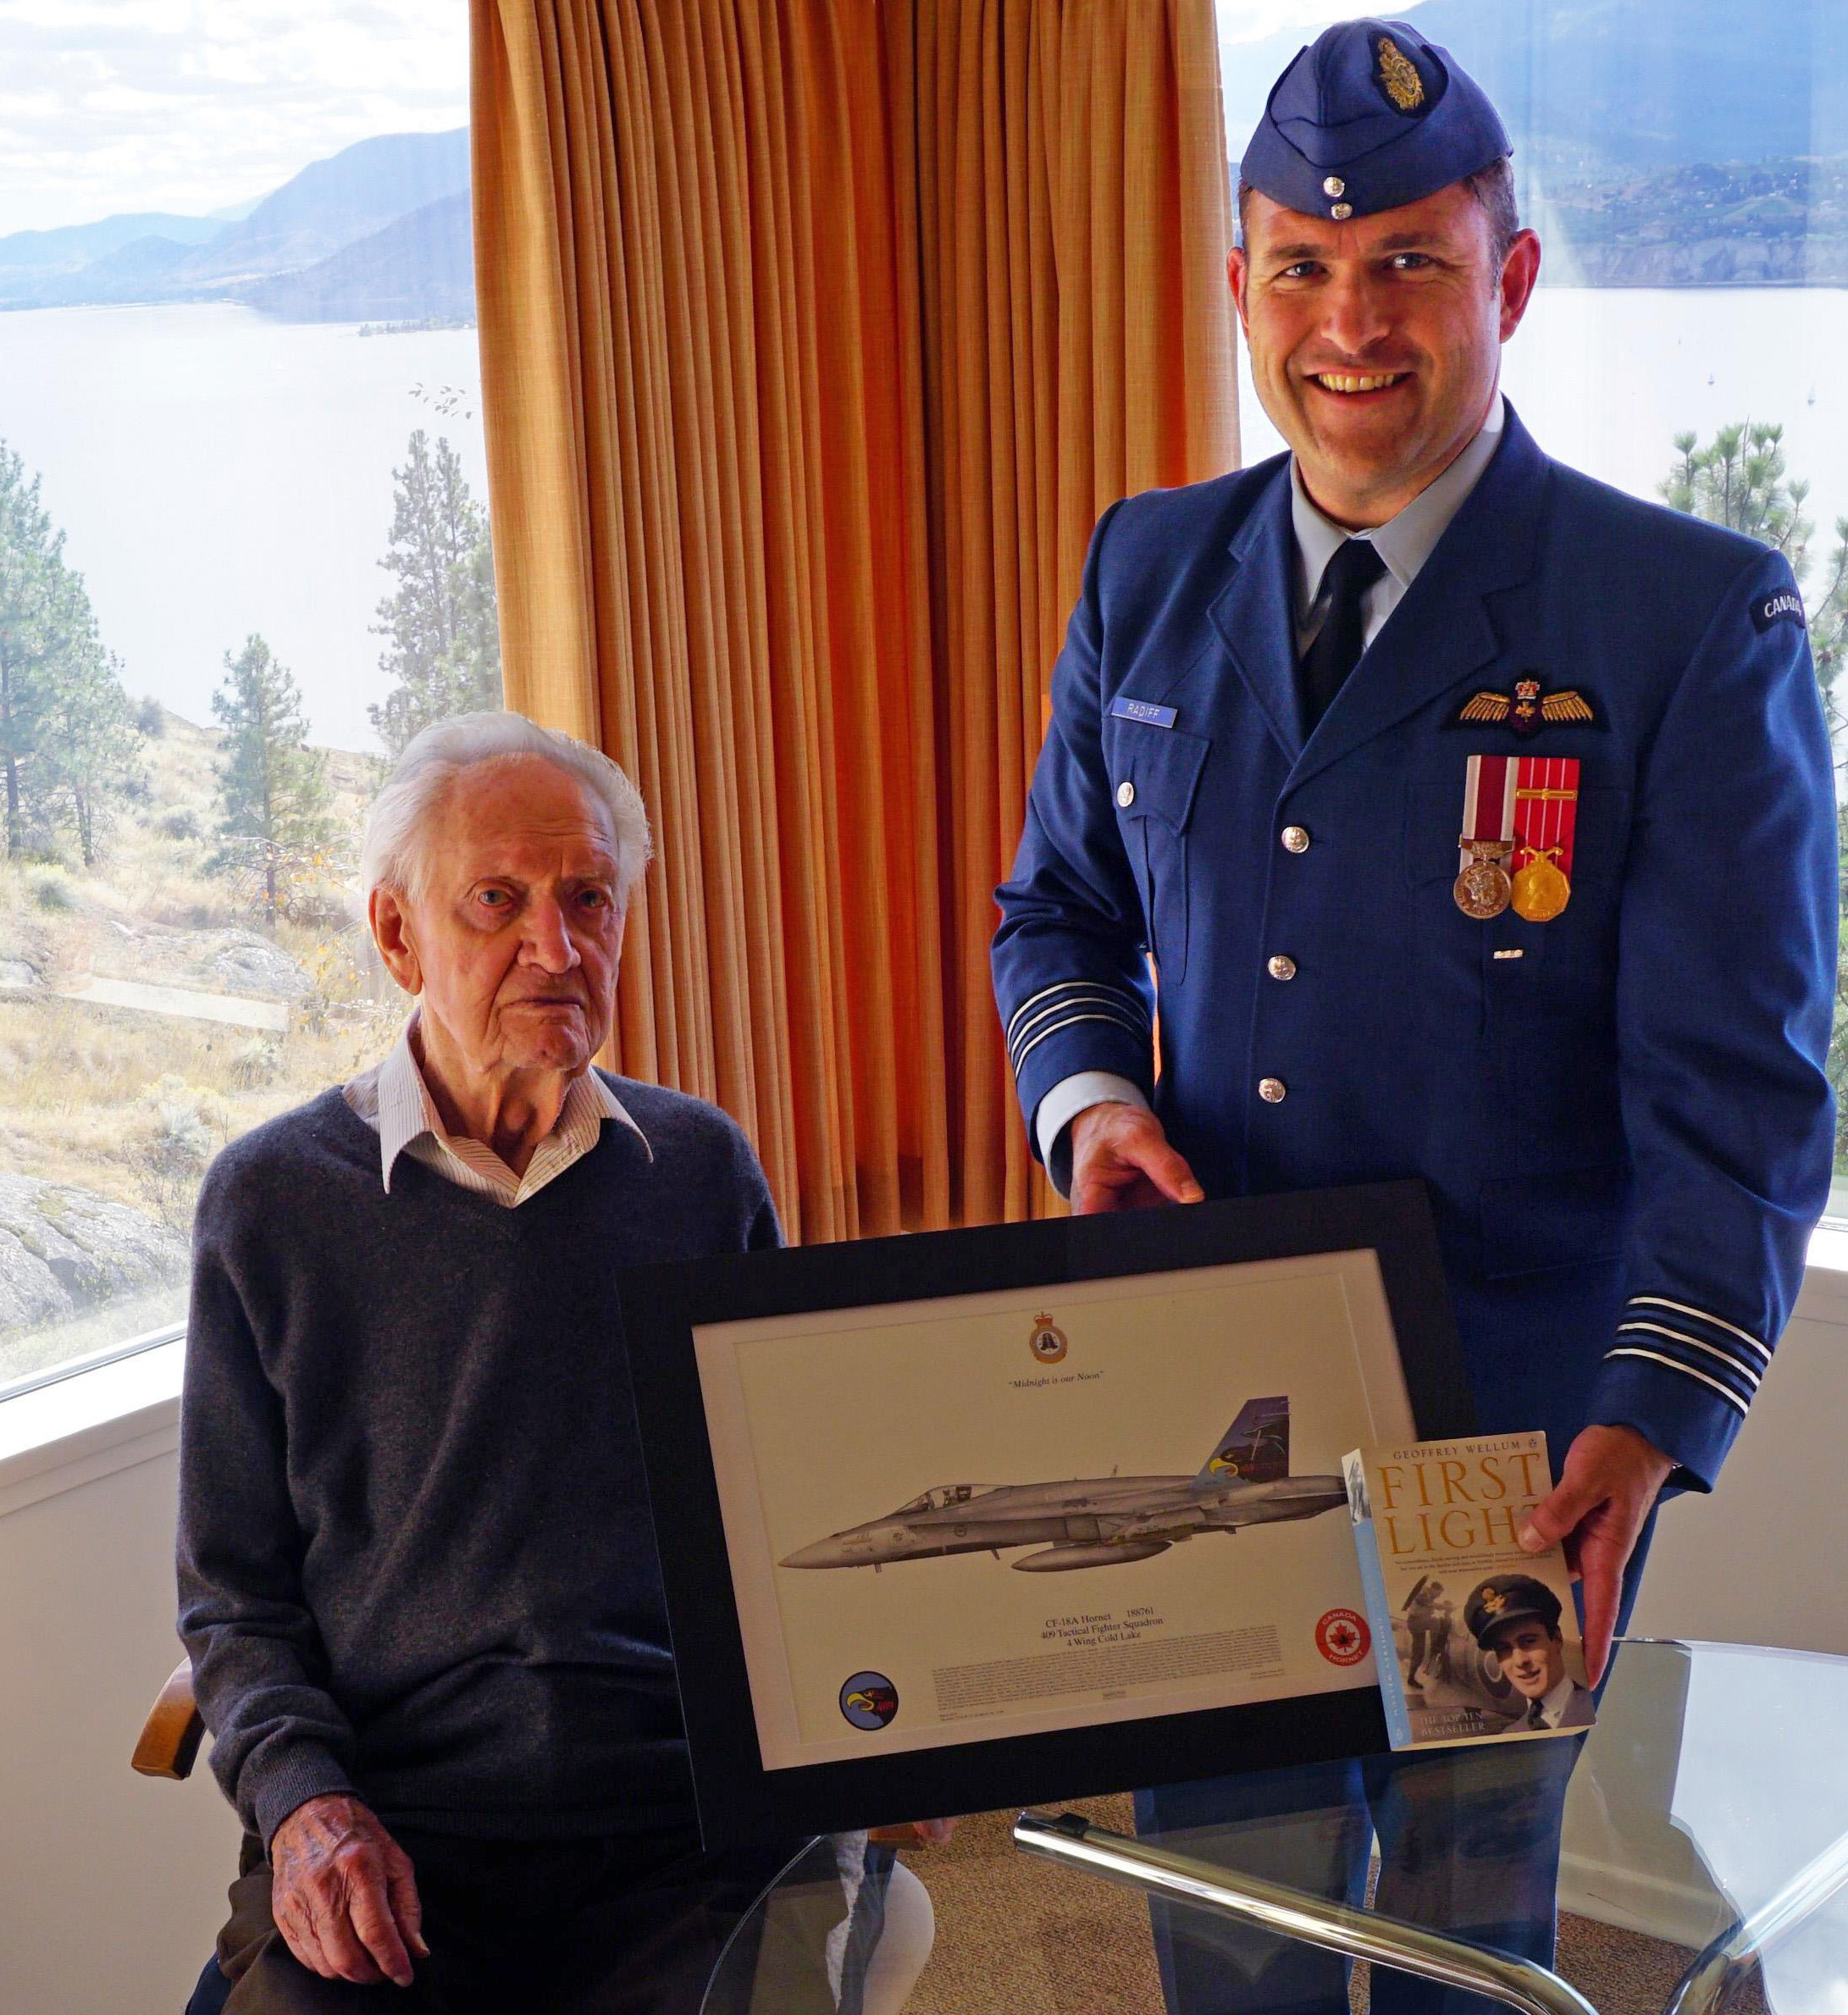 Lieutenant-Colonel William Radiff, commanding officer of 409 Squadron, presents Squadron Leader (retired) John Hart with a framed 409 Squadron commemorative print on the occasion of his 100th birthday. Squadron Leader John Hart presented Lieutenant-Colonel William Radiff a copy of the book First Light, written by Battle of Britain pilot Geoffrey Wellum, explaining that it is a very accurate description of what it was like to be a fighter pilot in the Second World War. PHOTO: Submitted